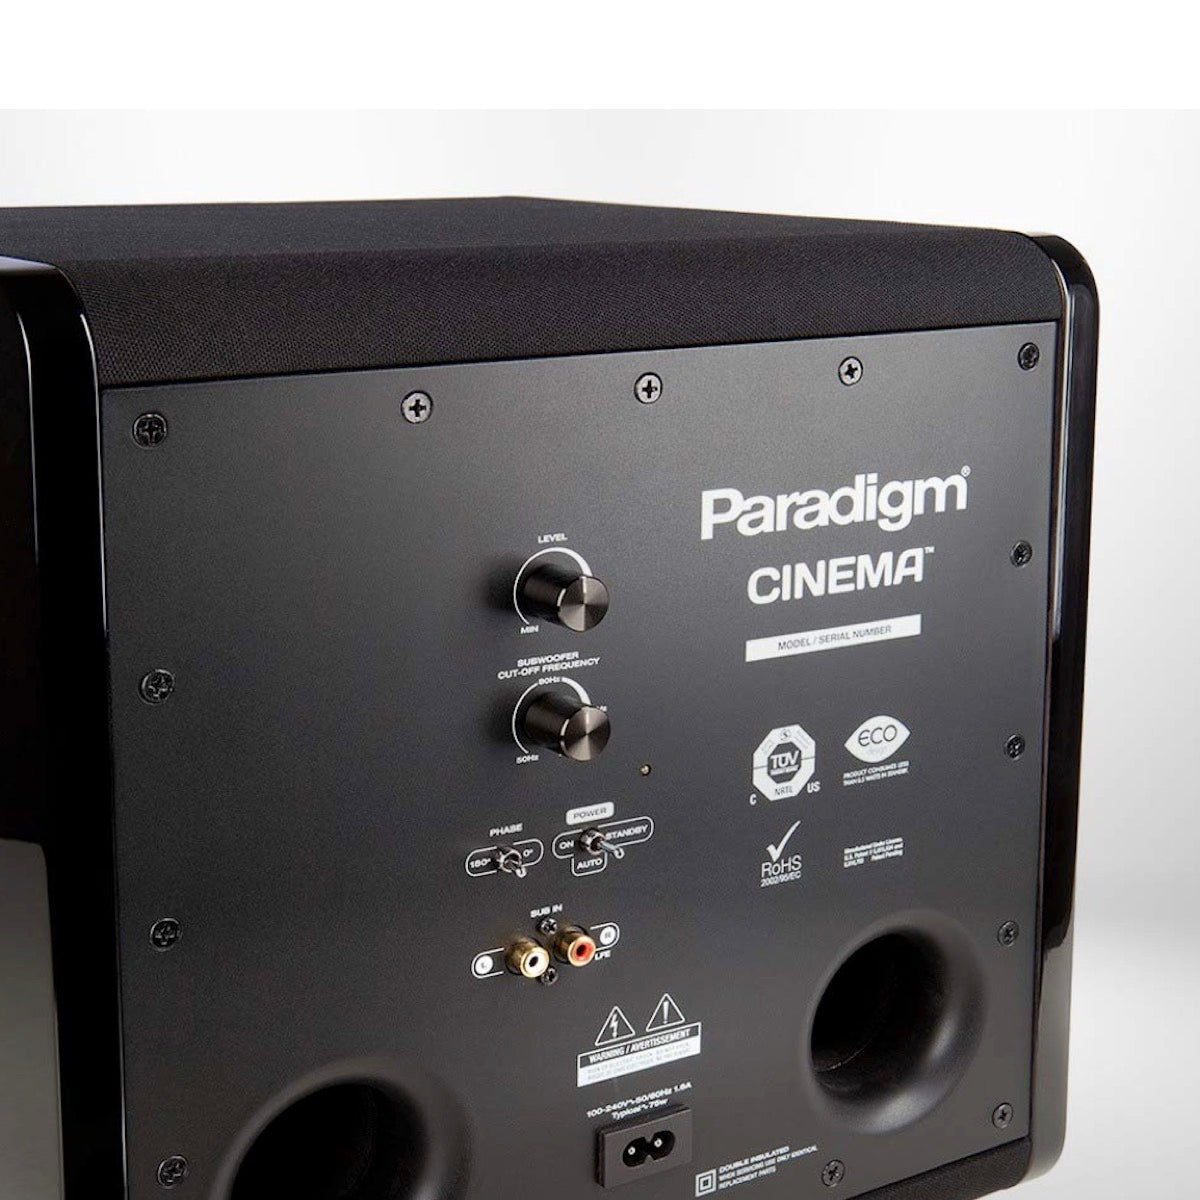 Paradigm Cinema Sub - Active Subwoofer, Paradigm, Active Subwoofer - AVStore.in